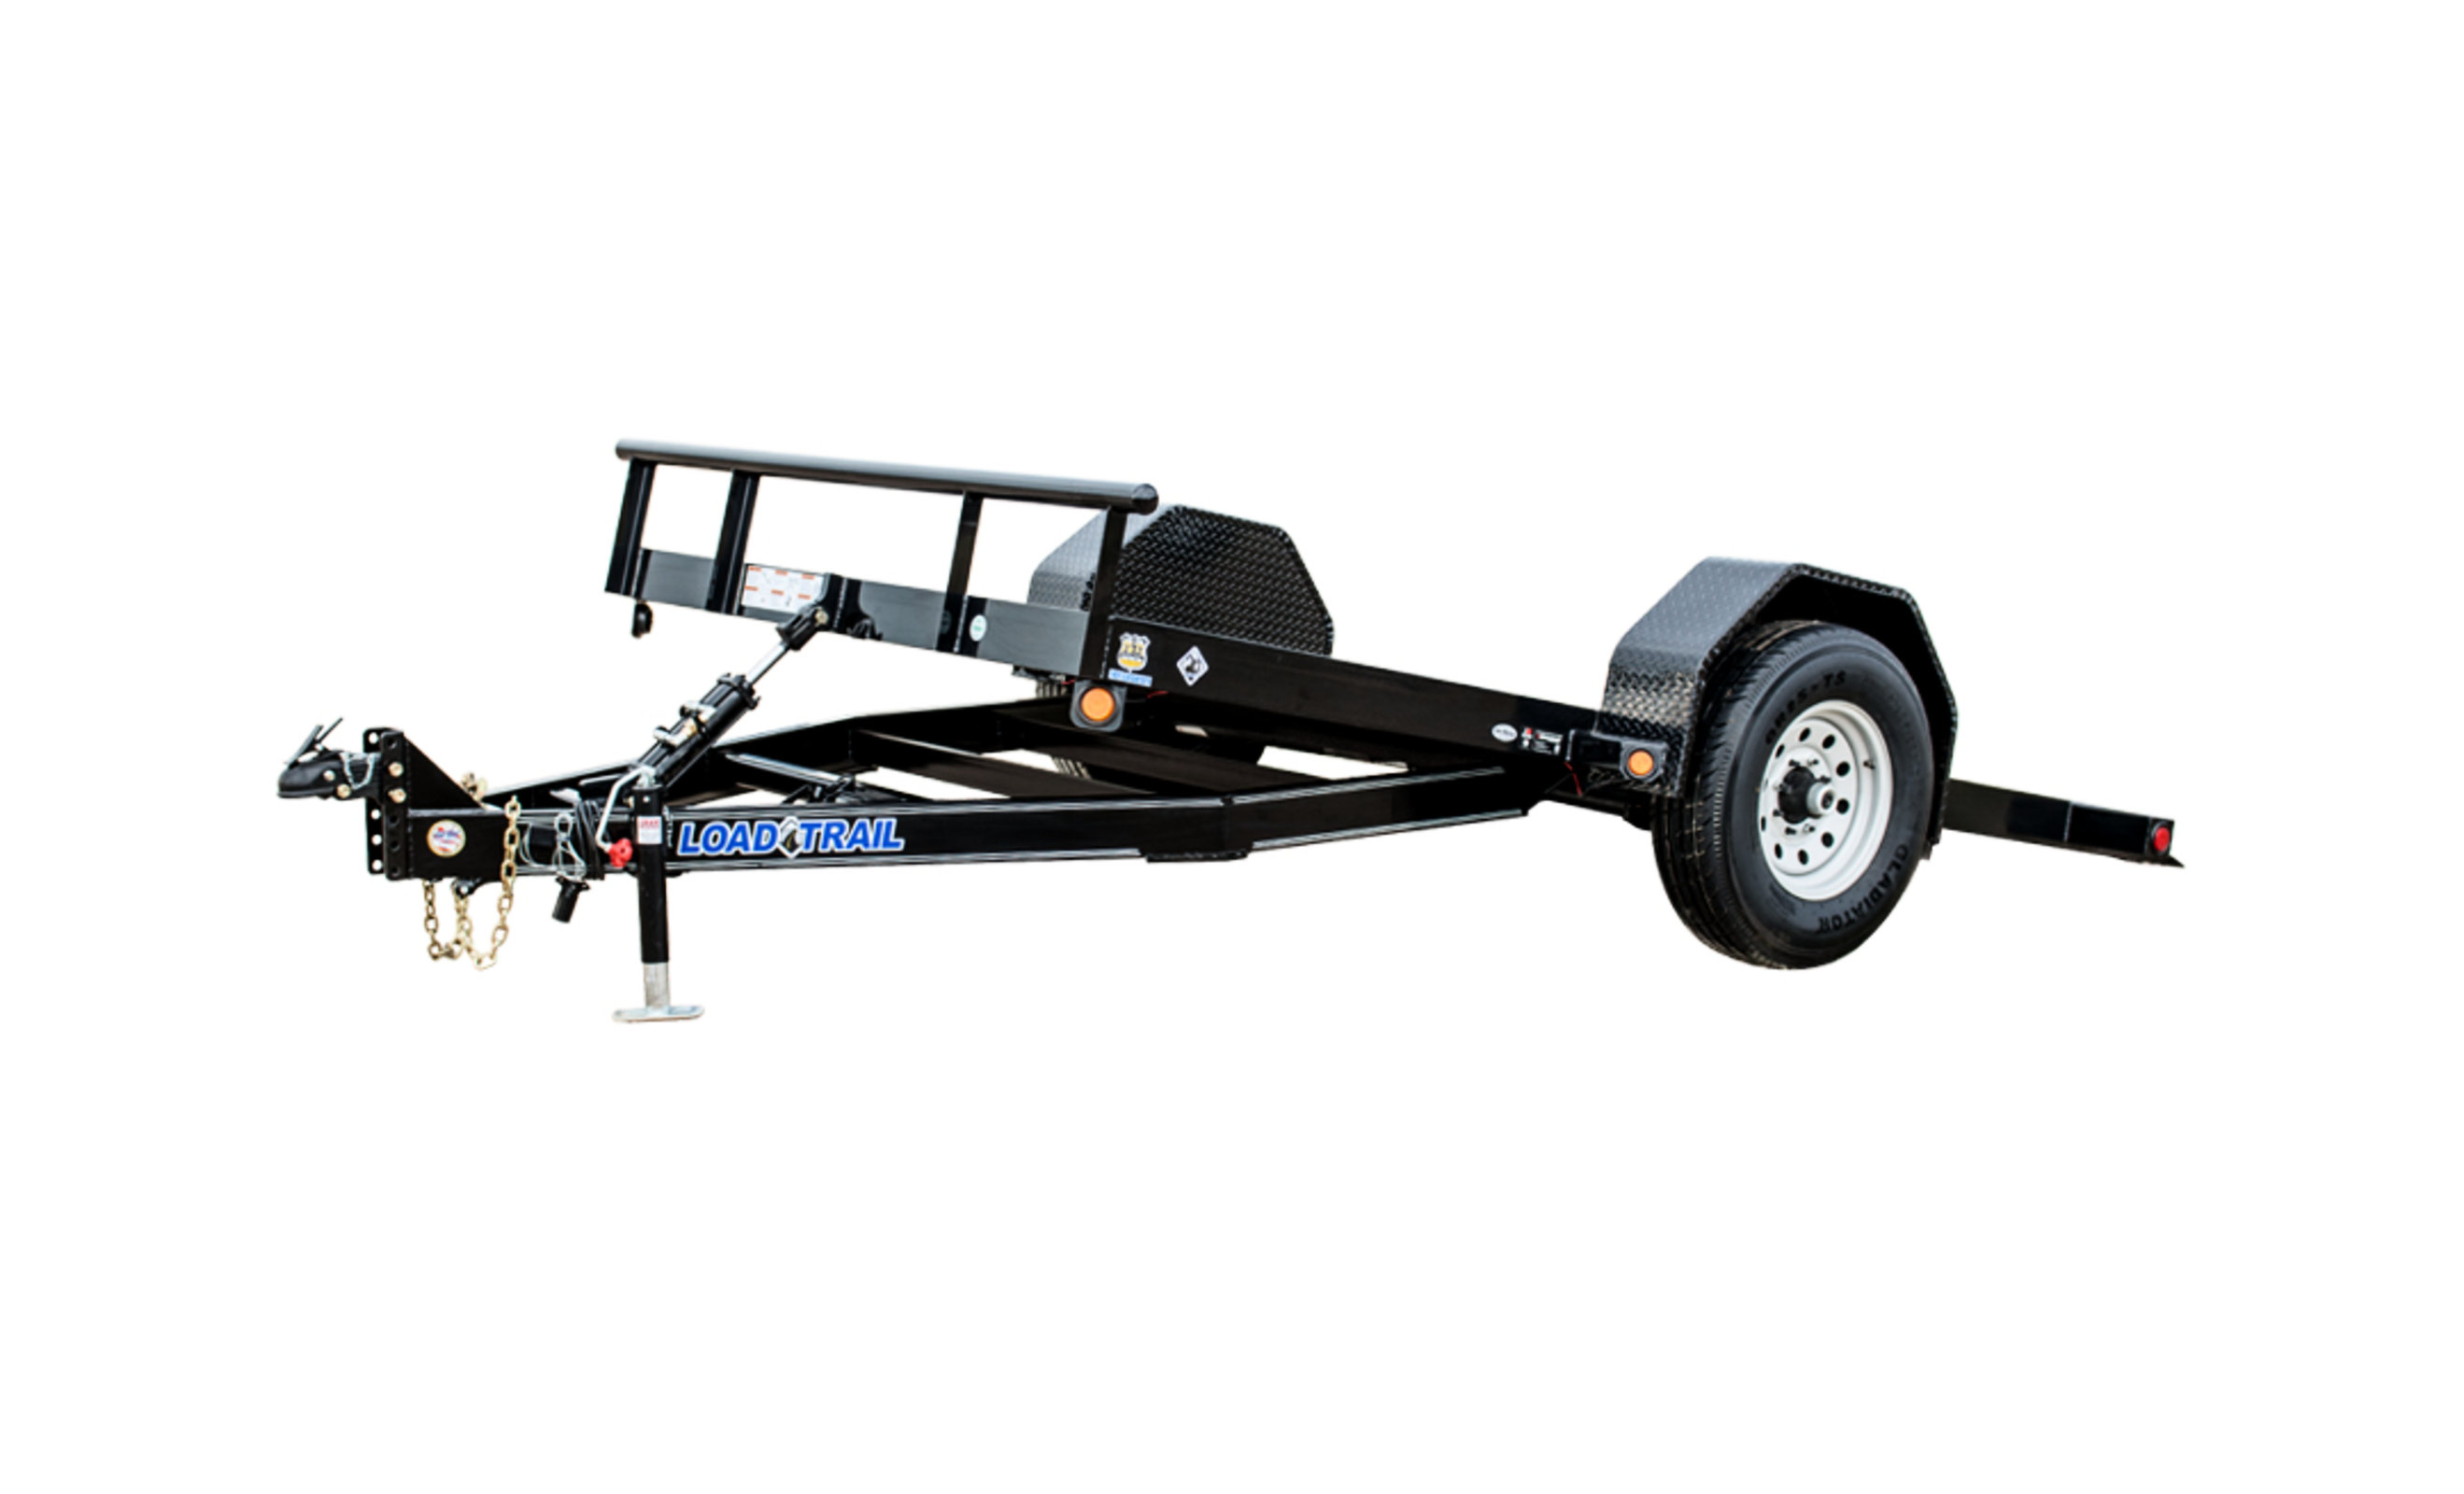 Byo Single Axle Scissor Hauler W 3 X 5 Angle Iron